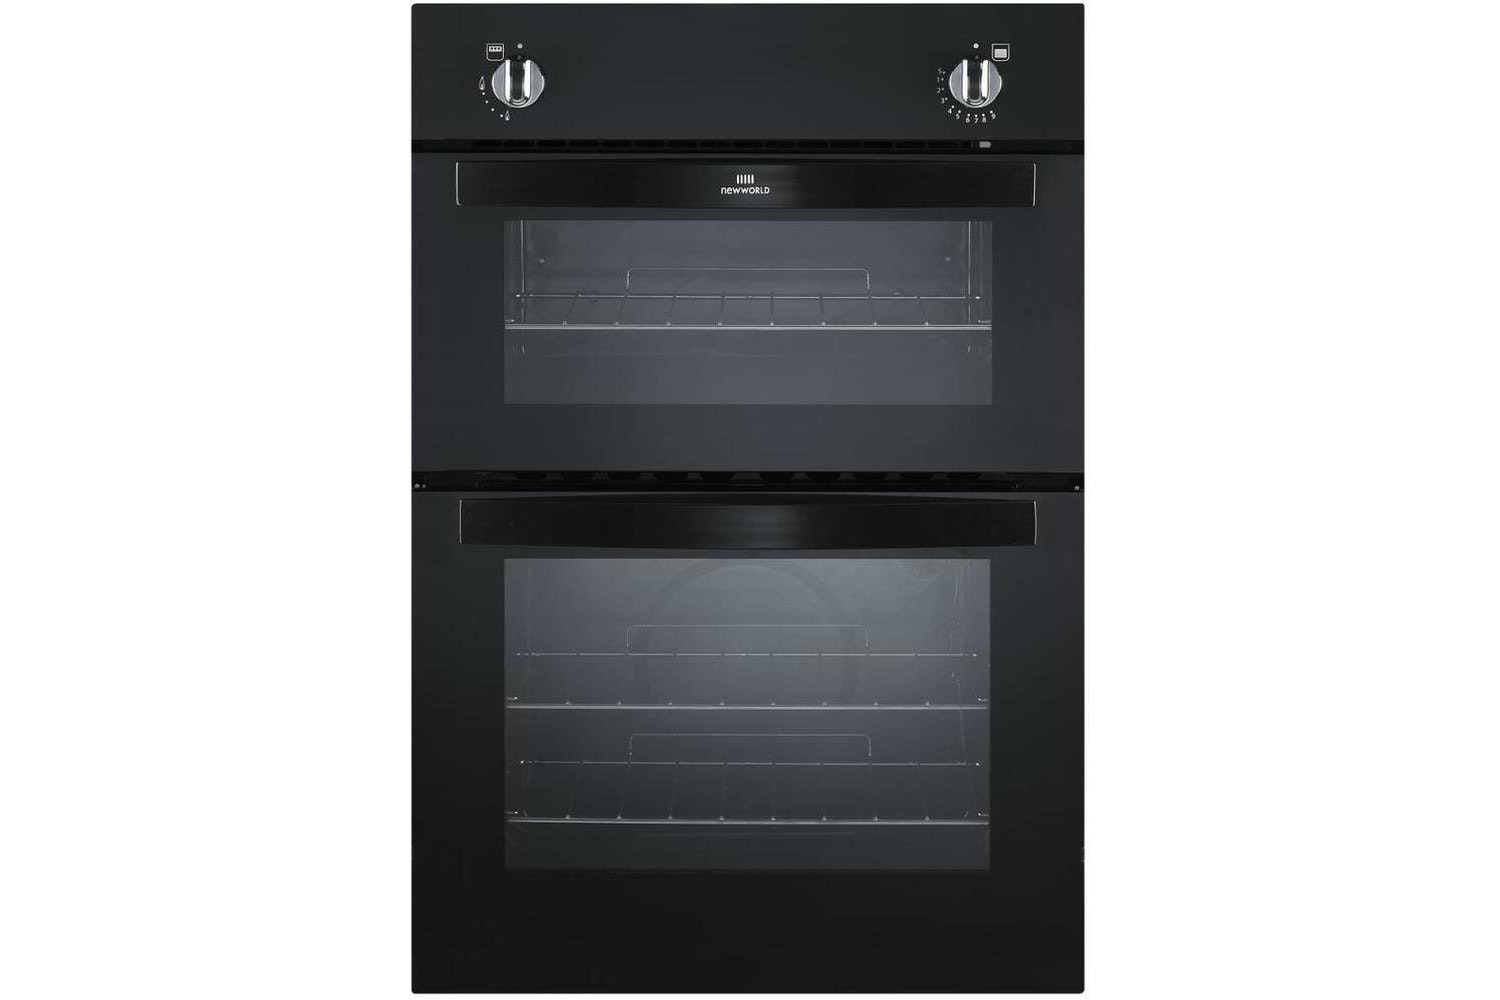 New World Built-in Double Oven | NW901GBKNG